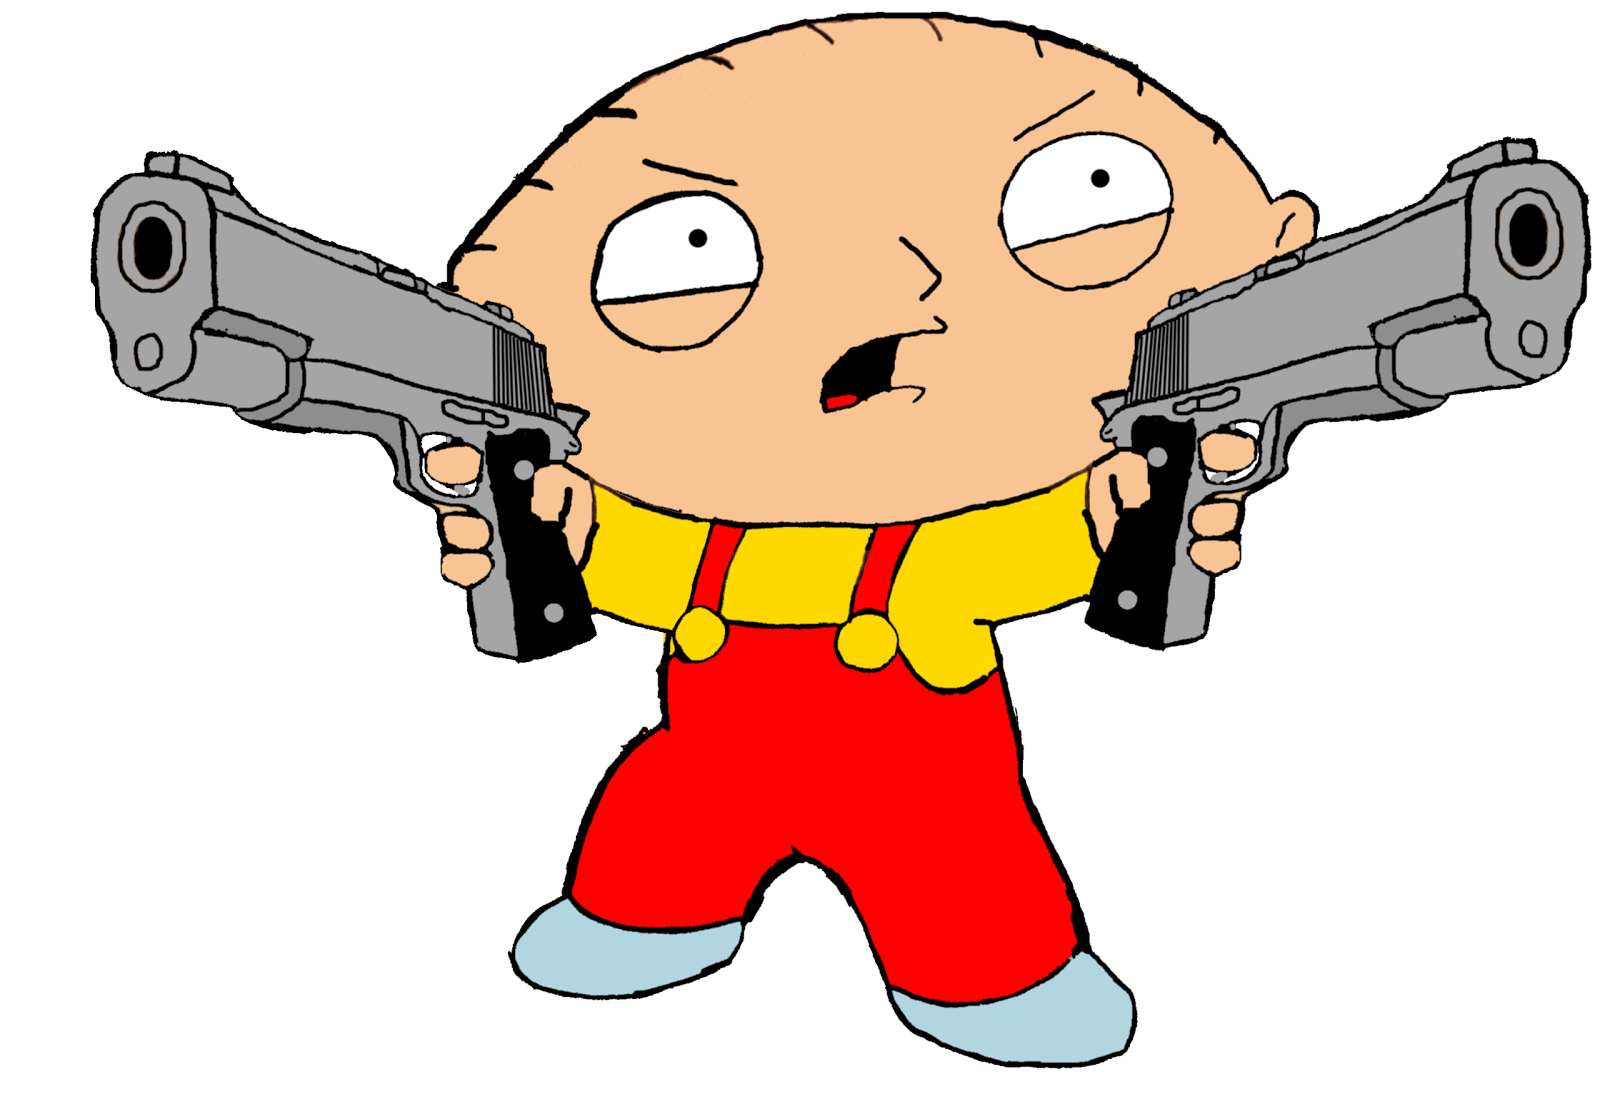 Guy characters with guns guy wallpaper family guy - Family guy stewie background ...